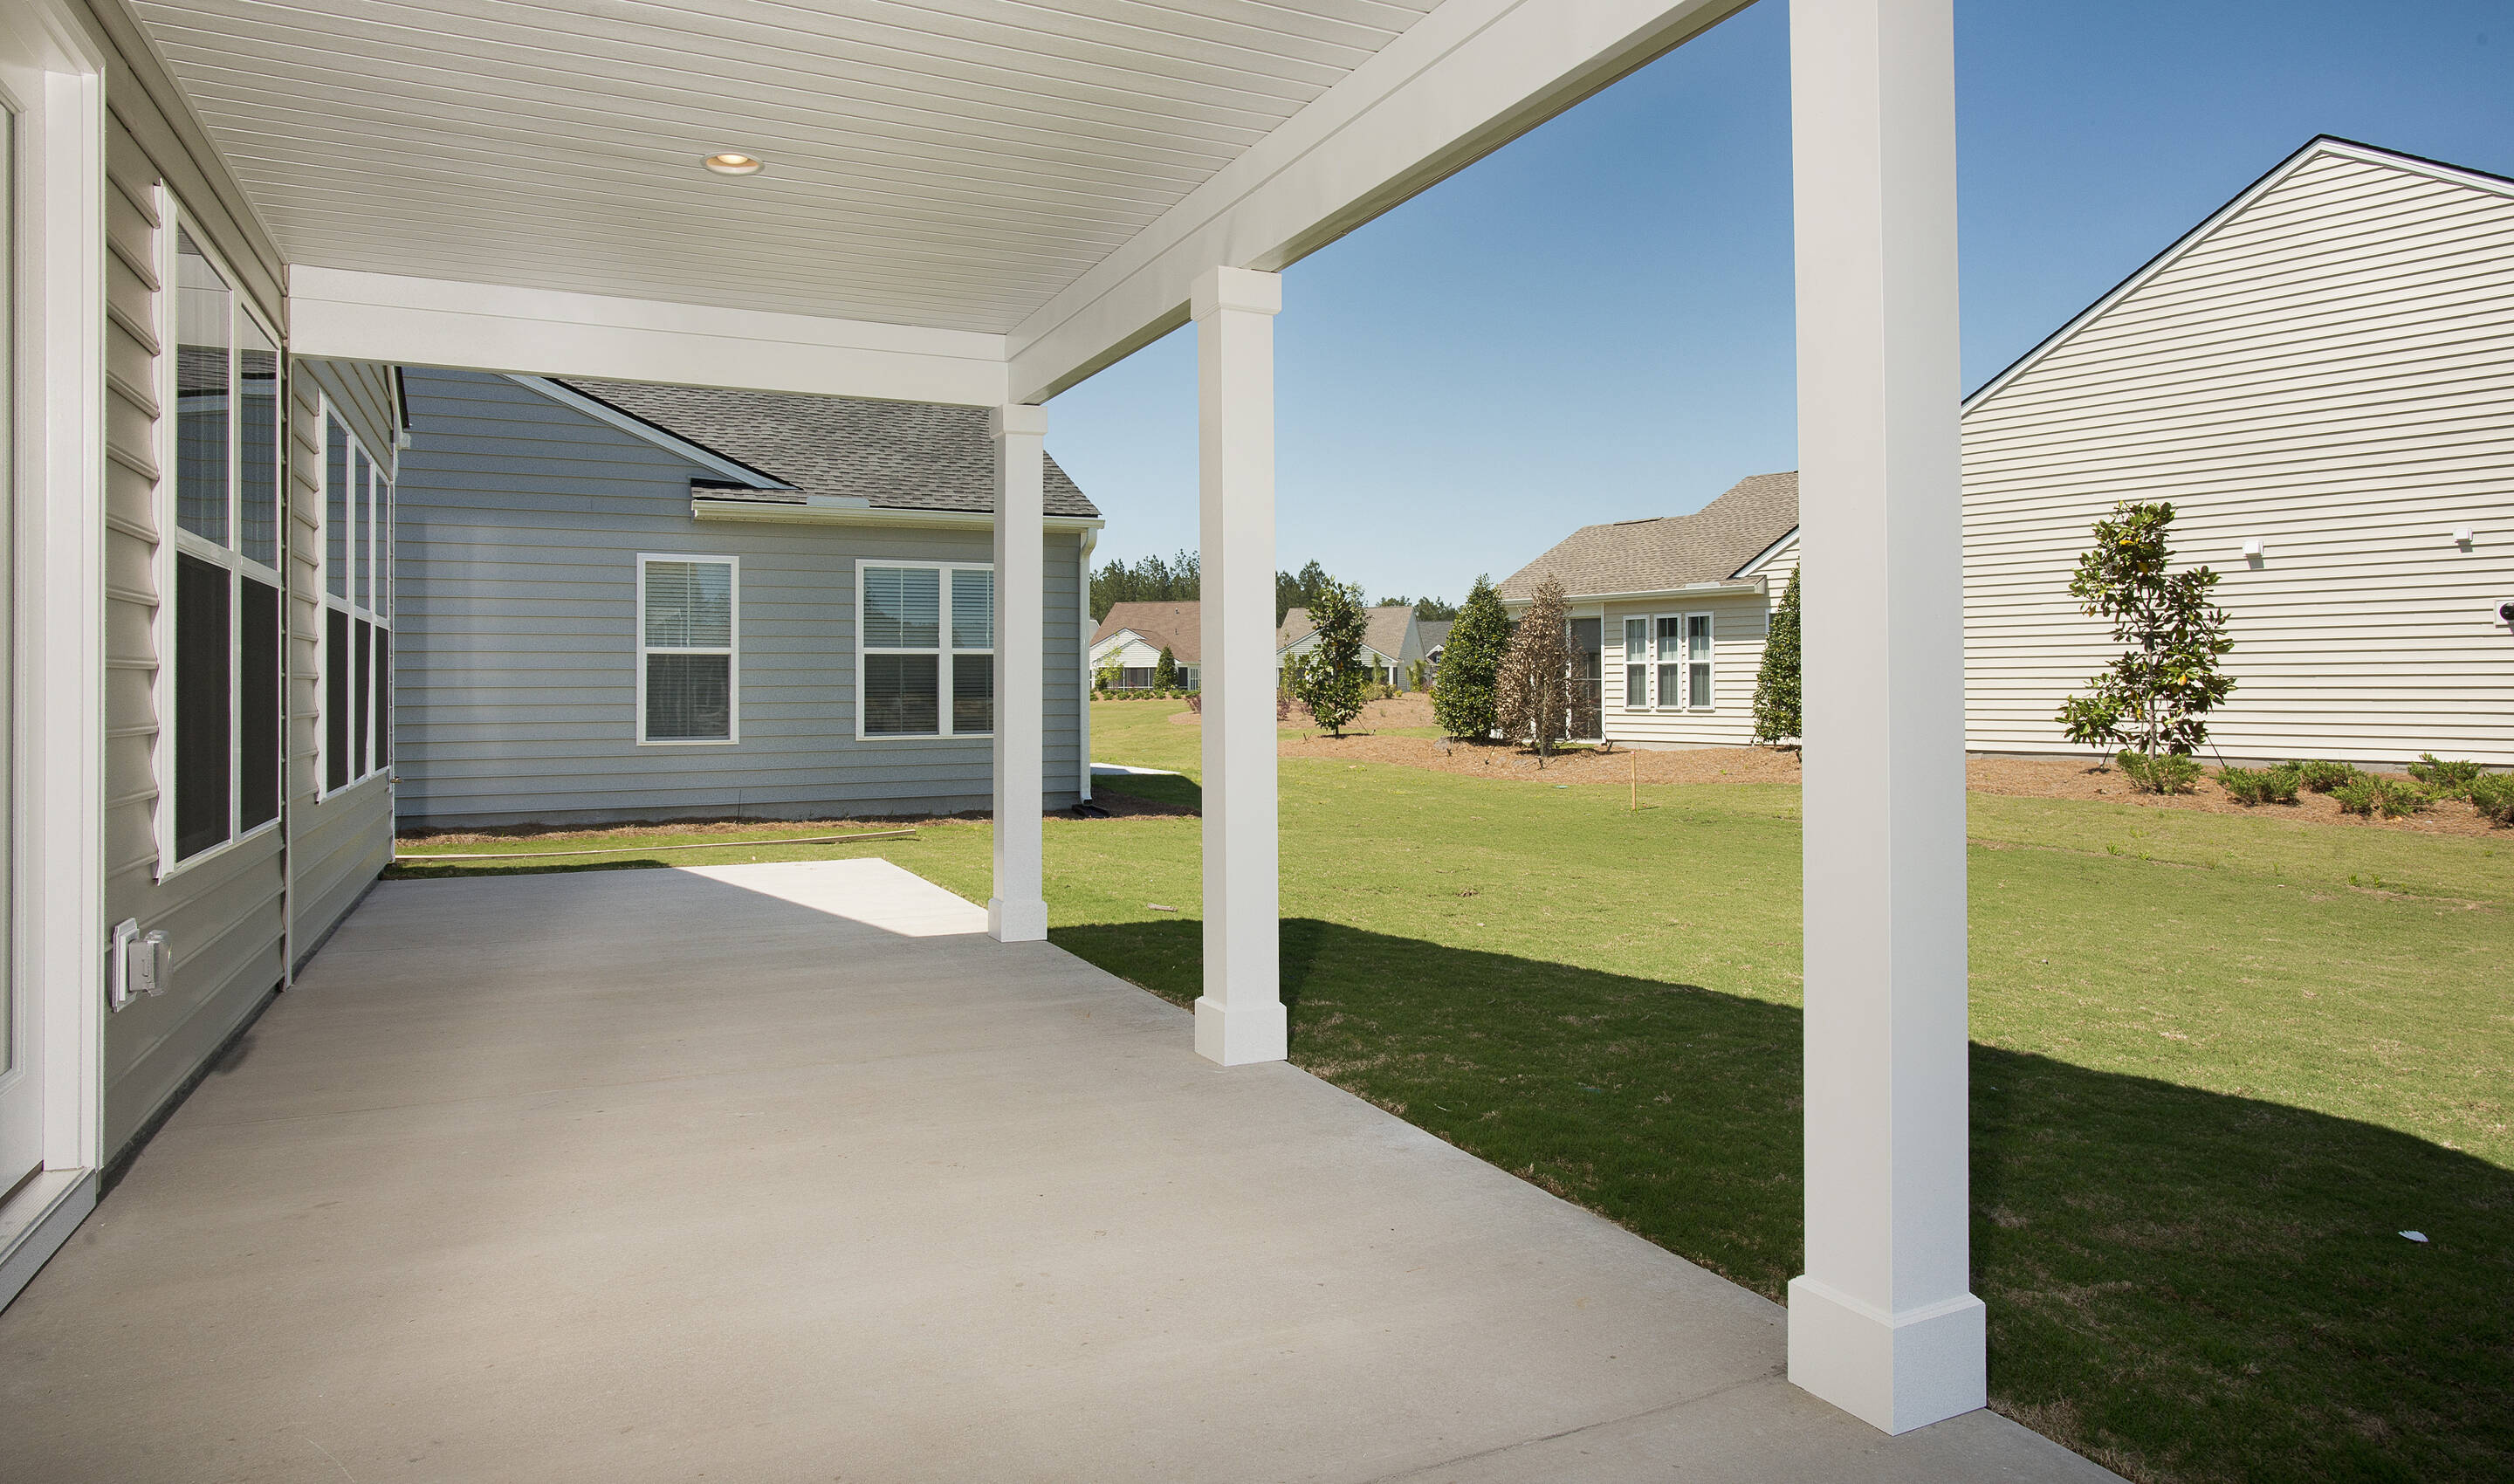 porch dorchester 544 lot 202 new homes at cane bay